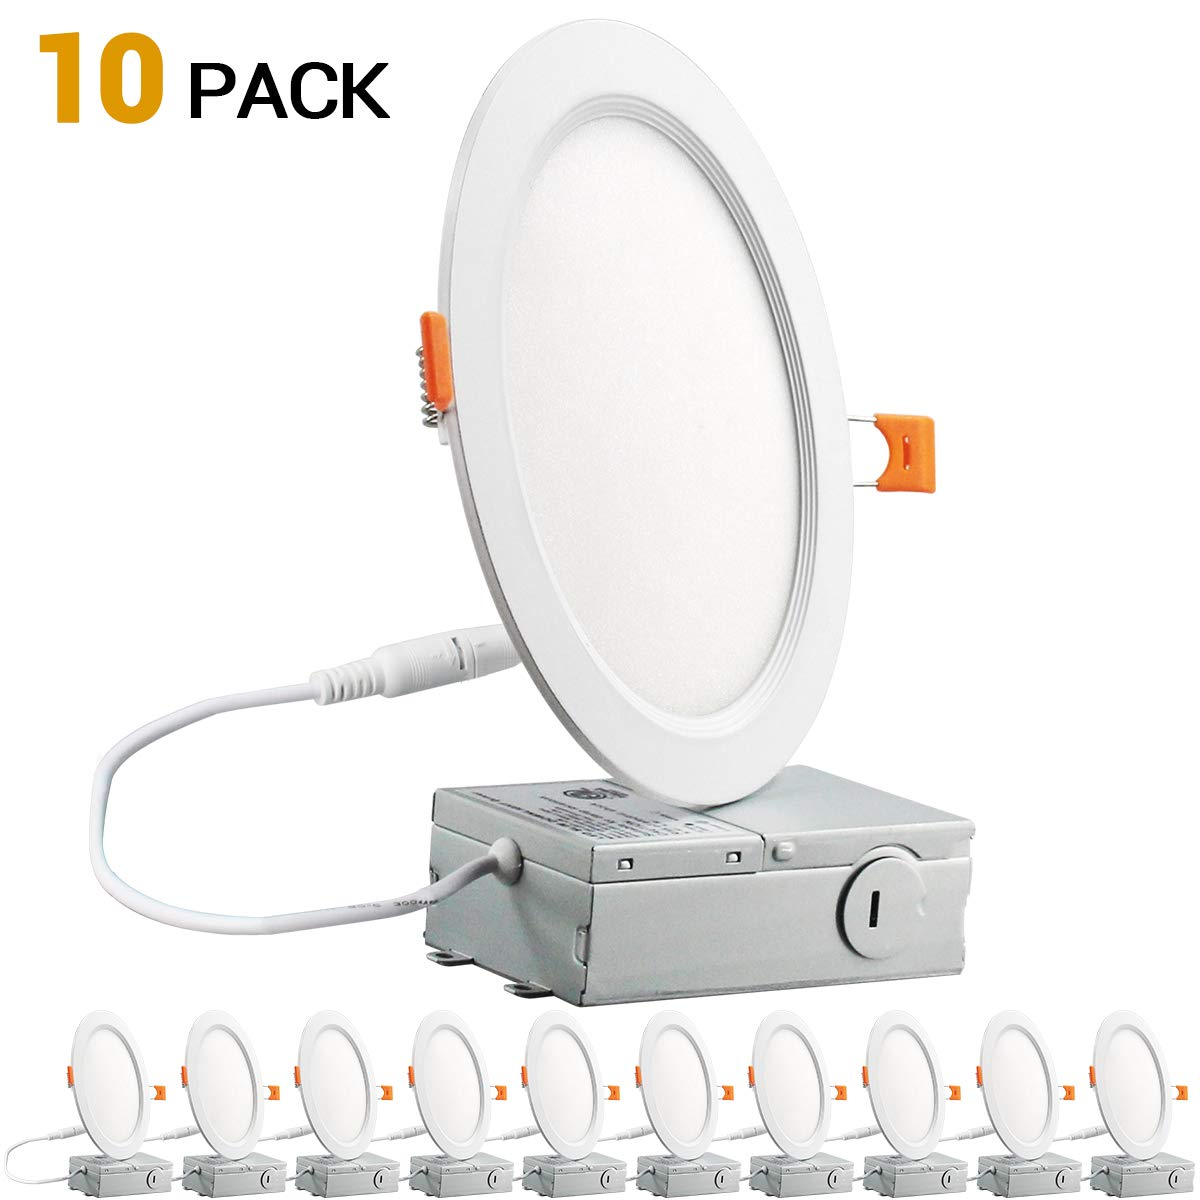 12W 6 inch Slim Recessed Ceiling Light 950LM 5000K Daylight Dimmable Airtight Downlight with Remote Driver -10PK